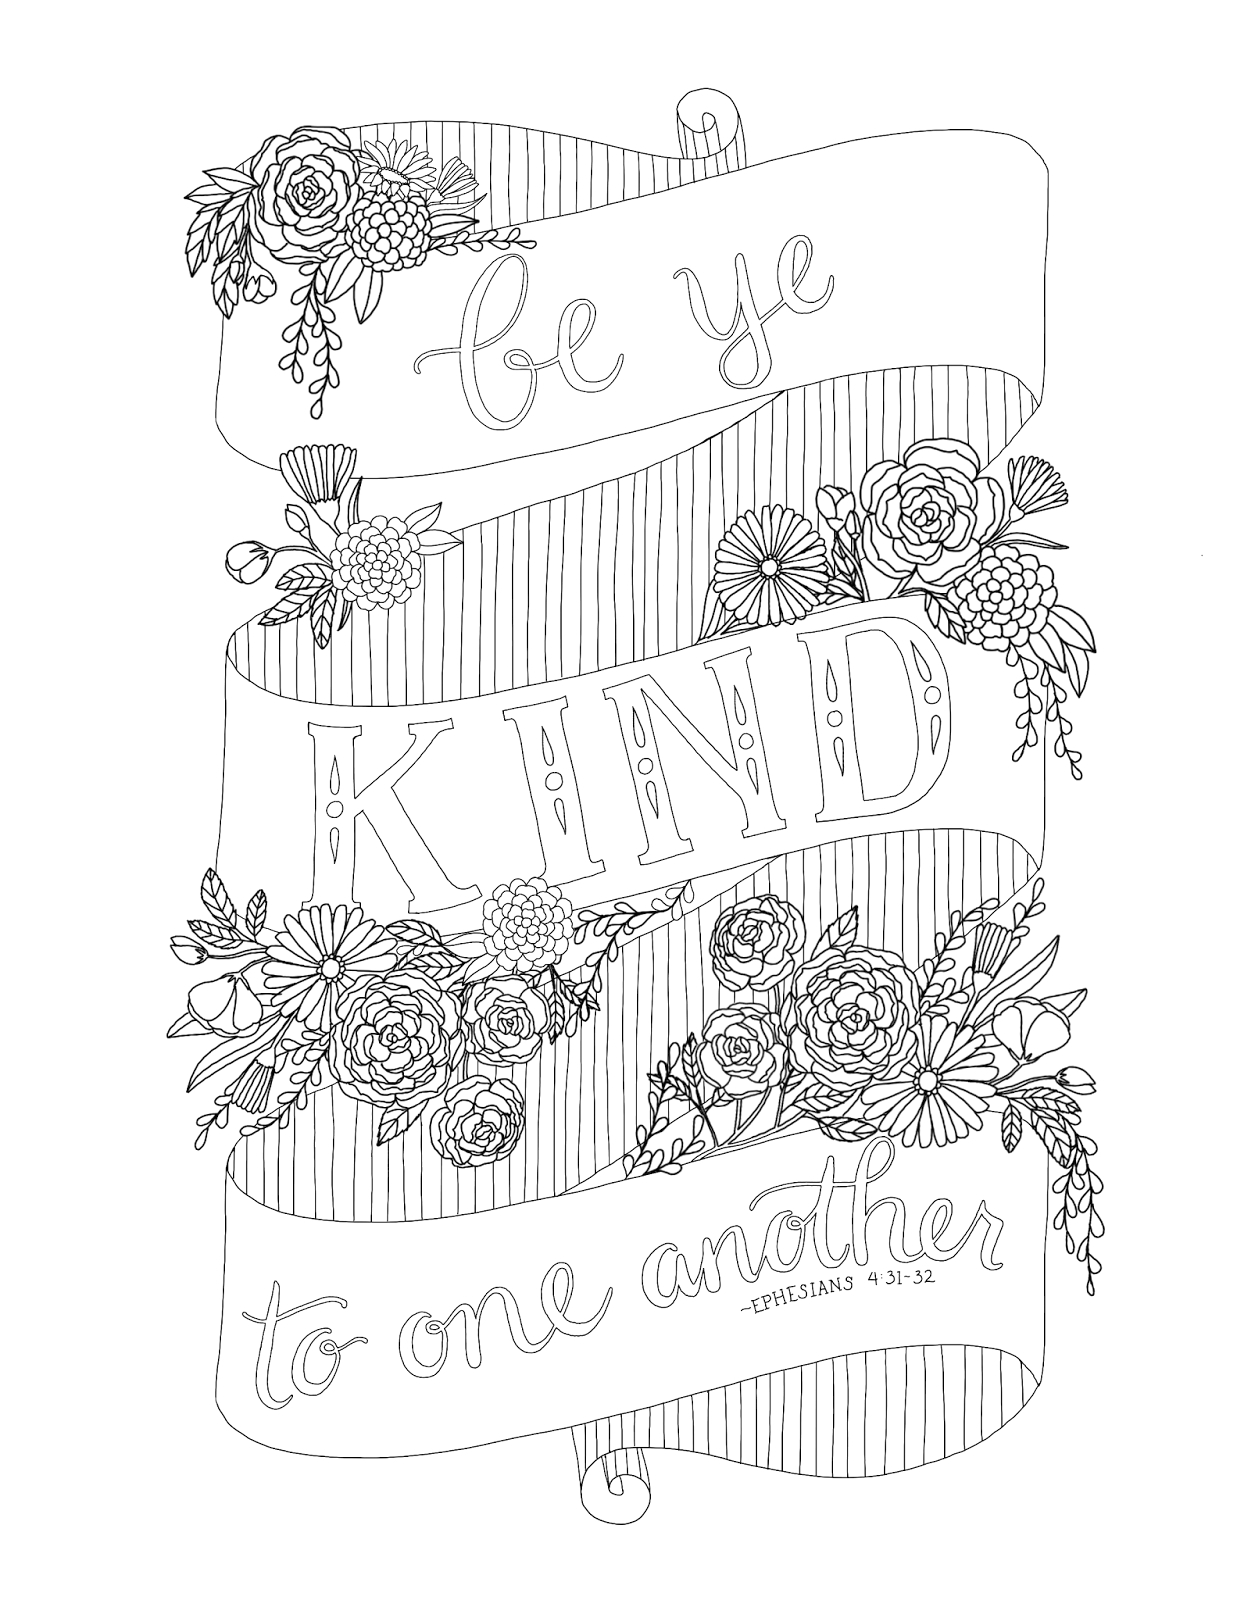 Be Kind to One Another Coloring Page Just What I Squeeze In Be Ye Kind to One Another